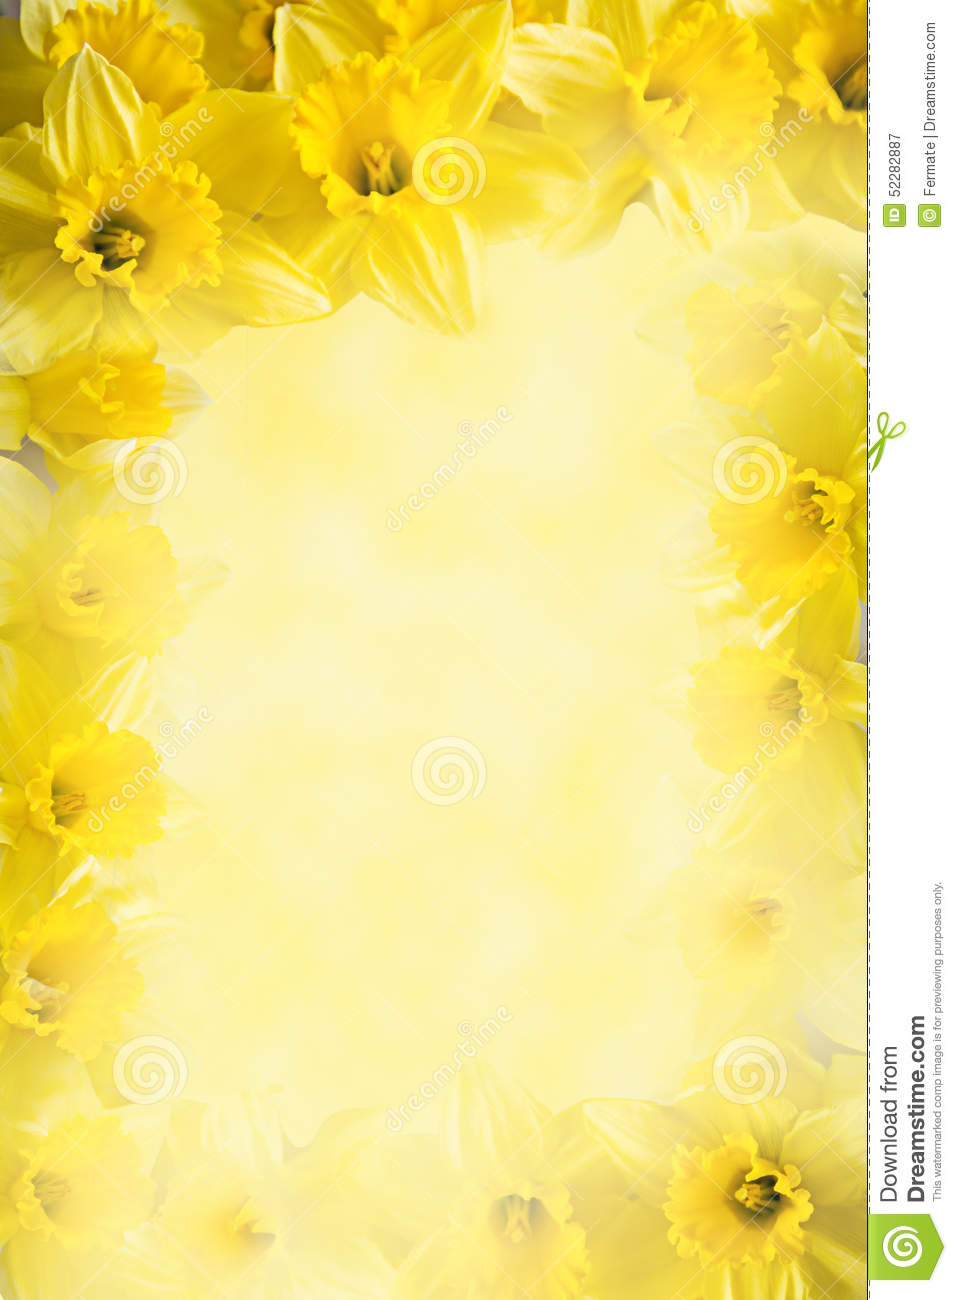 Frame From Daffodils Yellow Flower Background With Copy Space